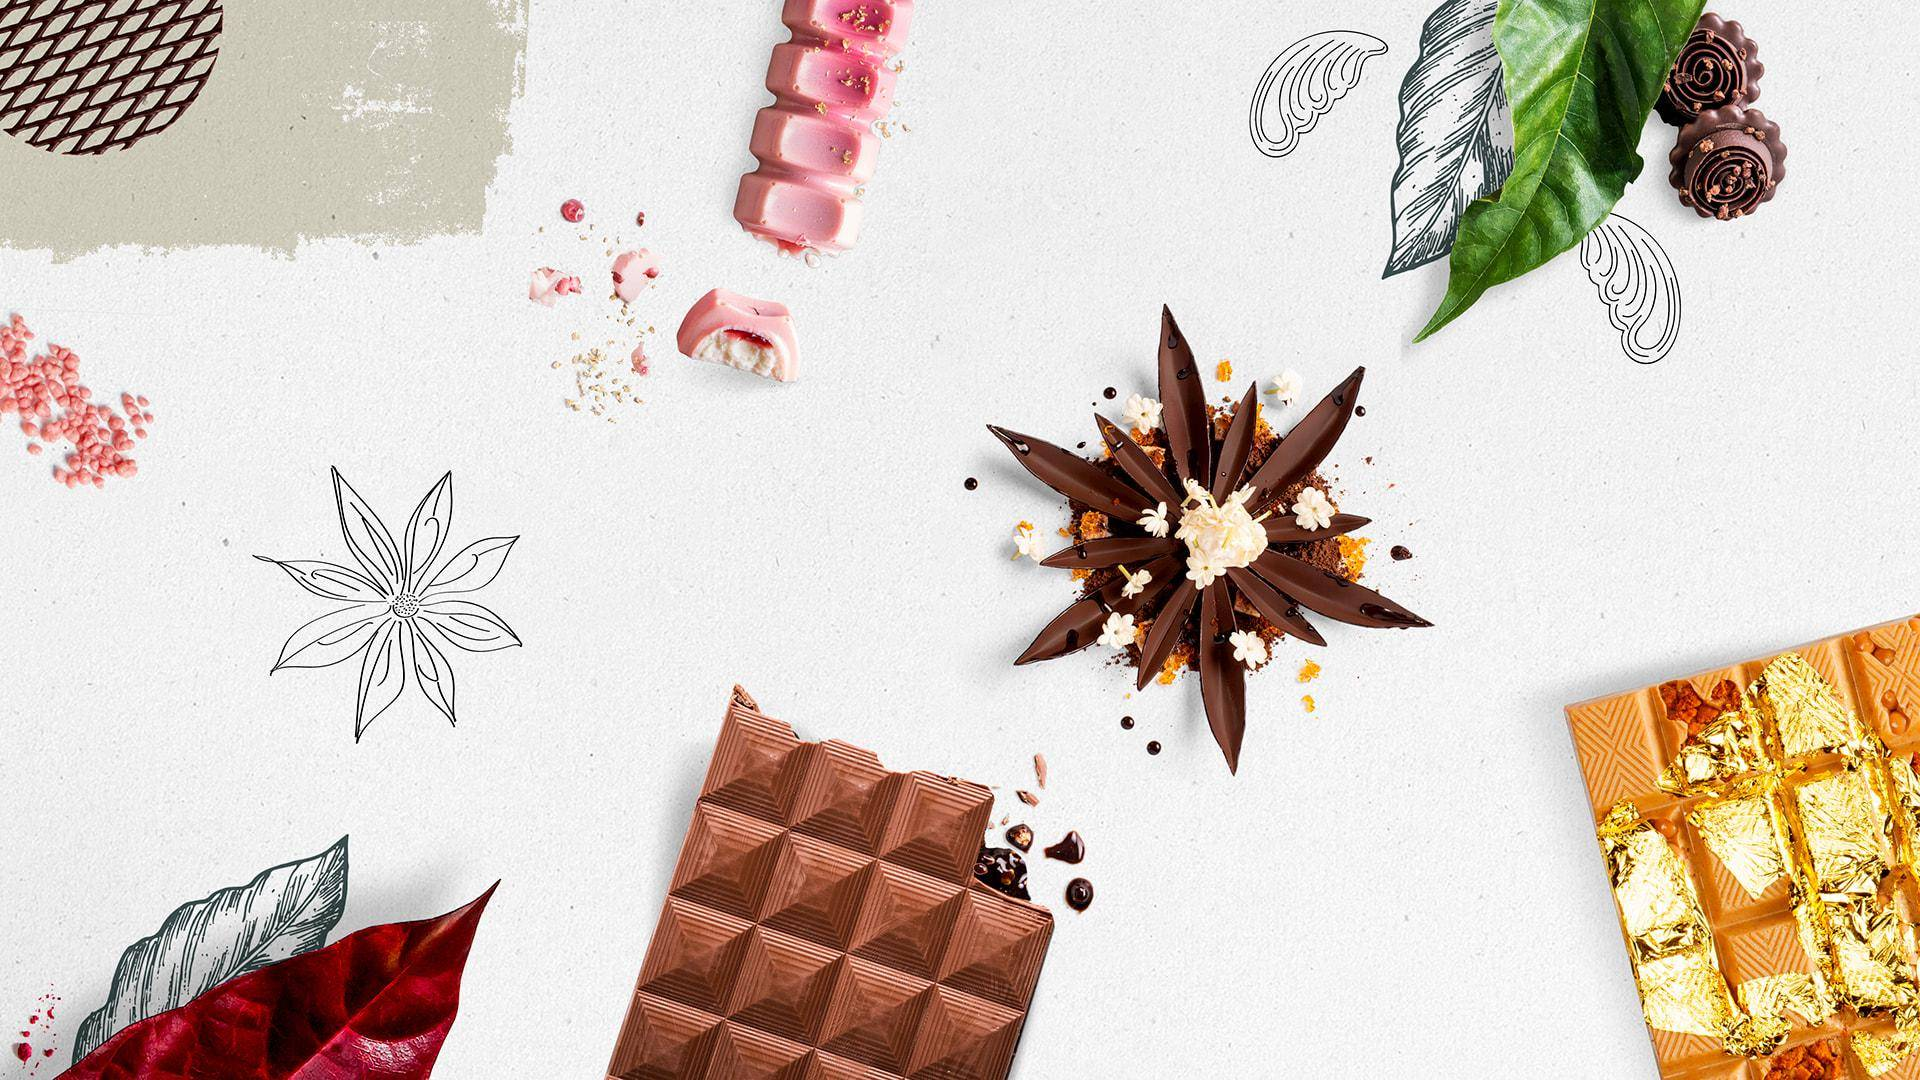 Full-Year Results Barry Callebaut 2019/2020